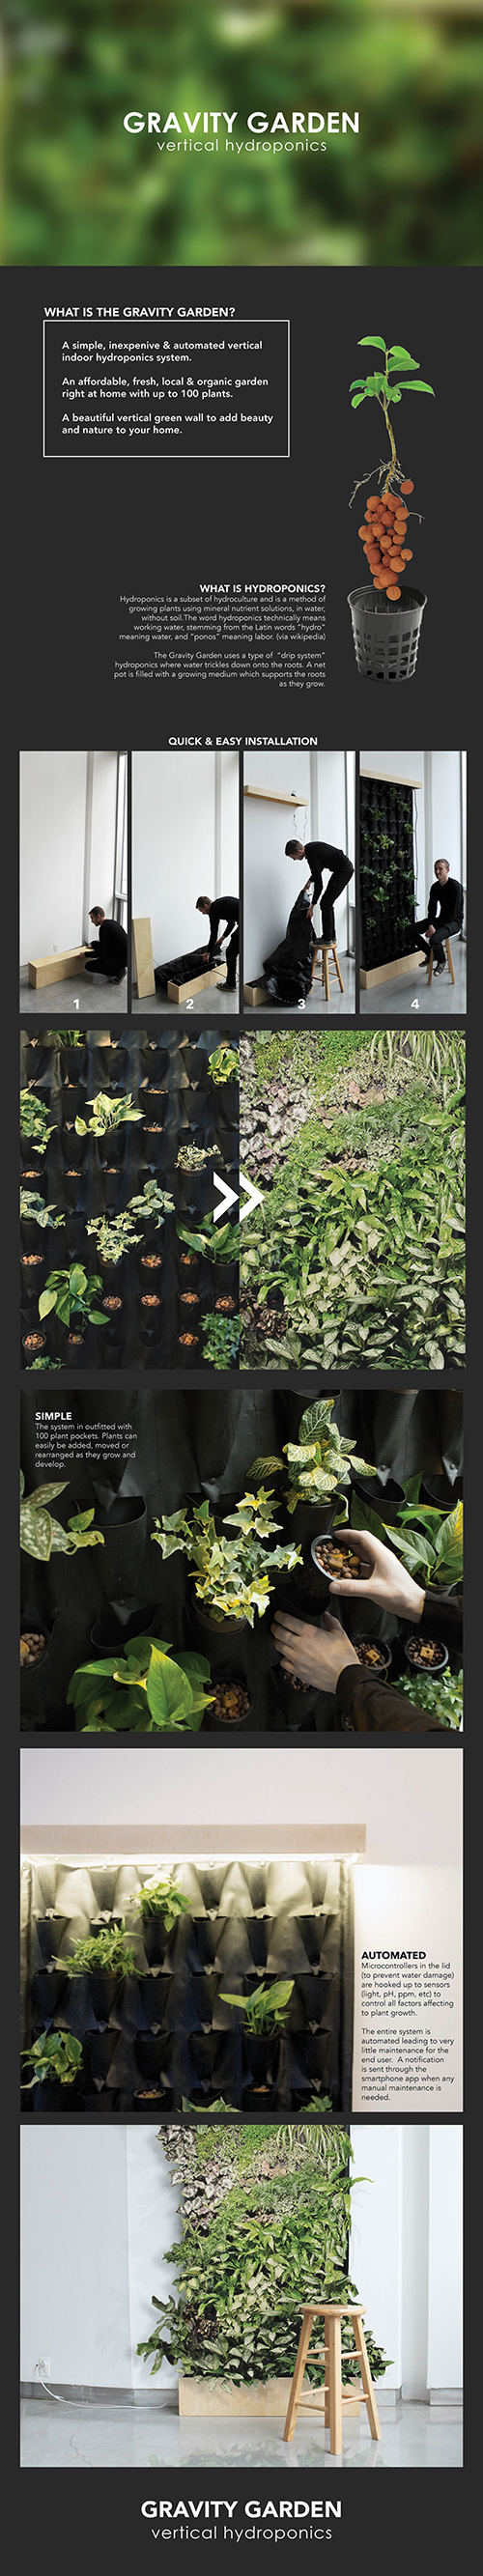 garden plants vertical garden vertical Food  hydroponic product organic compact flatpack affordable design